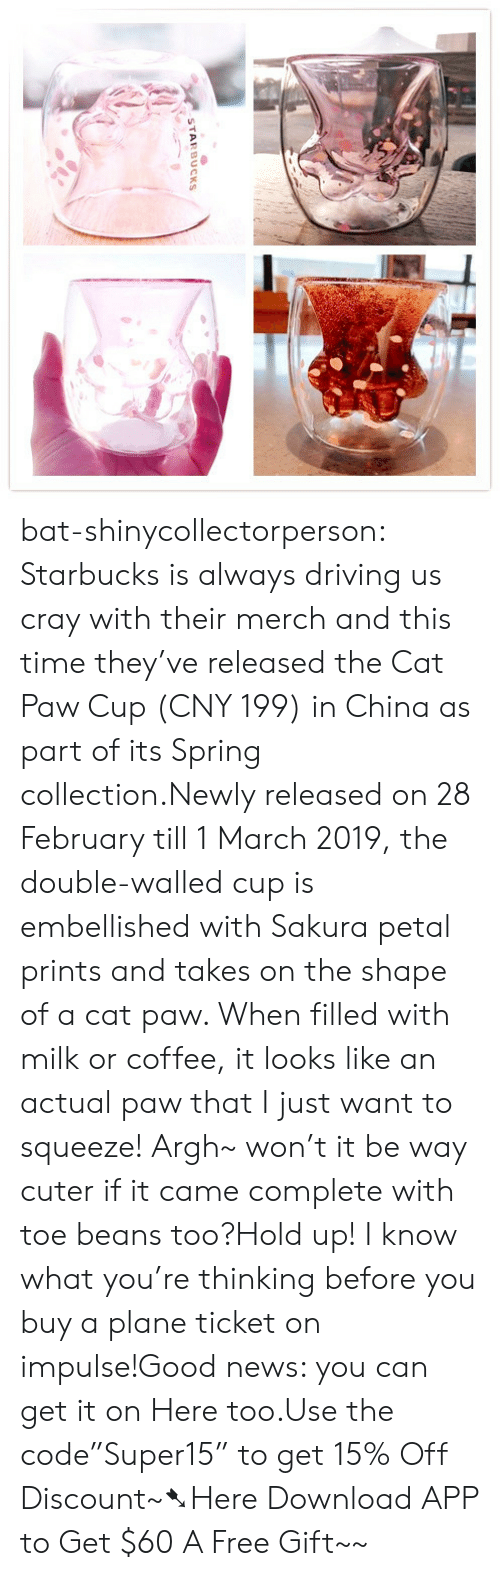 "petal: STARBUCKS bat-shinycollectorperson:  Starbucks is always driving us cray with their merch and this time they've released the Cat Paw Cup (CNY 199) in China as part of its Spring collection.Newly released on 28 February till 1 March 2019, the double-walled cup is embellished with Sakura petal prints and takes on the shape of a cat paw. When filled with milk or coffee, it looks like an actual paw that I just want to squeeze! Argh~ won't it be way cuter if it came complete with toe beans too?Hold up! I know what you're thinking before you buy a plane ticket on impulse!Good news: you can get it on Here too.Use the code""Super15"" to get 15% Off Discount~➷Here Download APP to Get $60  A Free Gift~~"